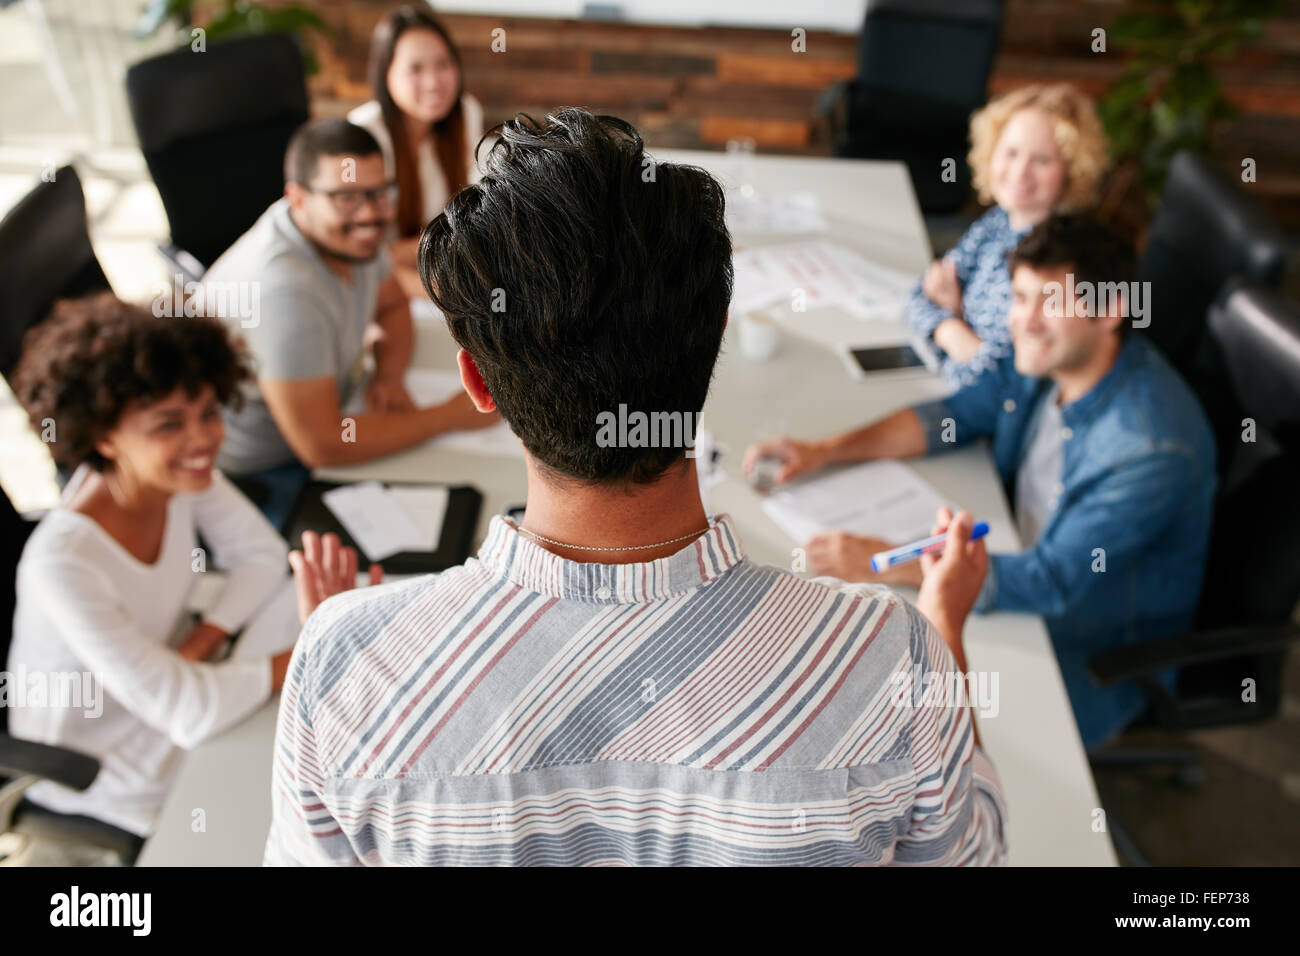 Rear view portrait of man explaining business ideas to colleagues during a meeting in conference room.  Young people - Stock Image